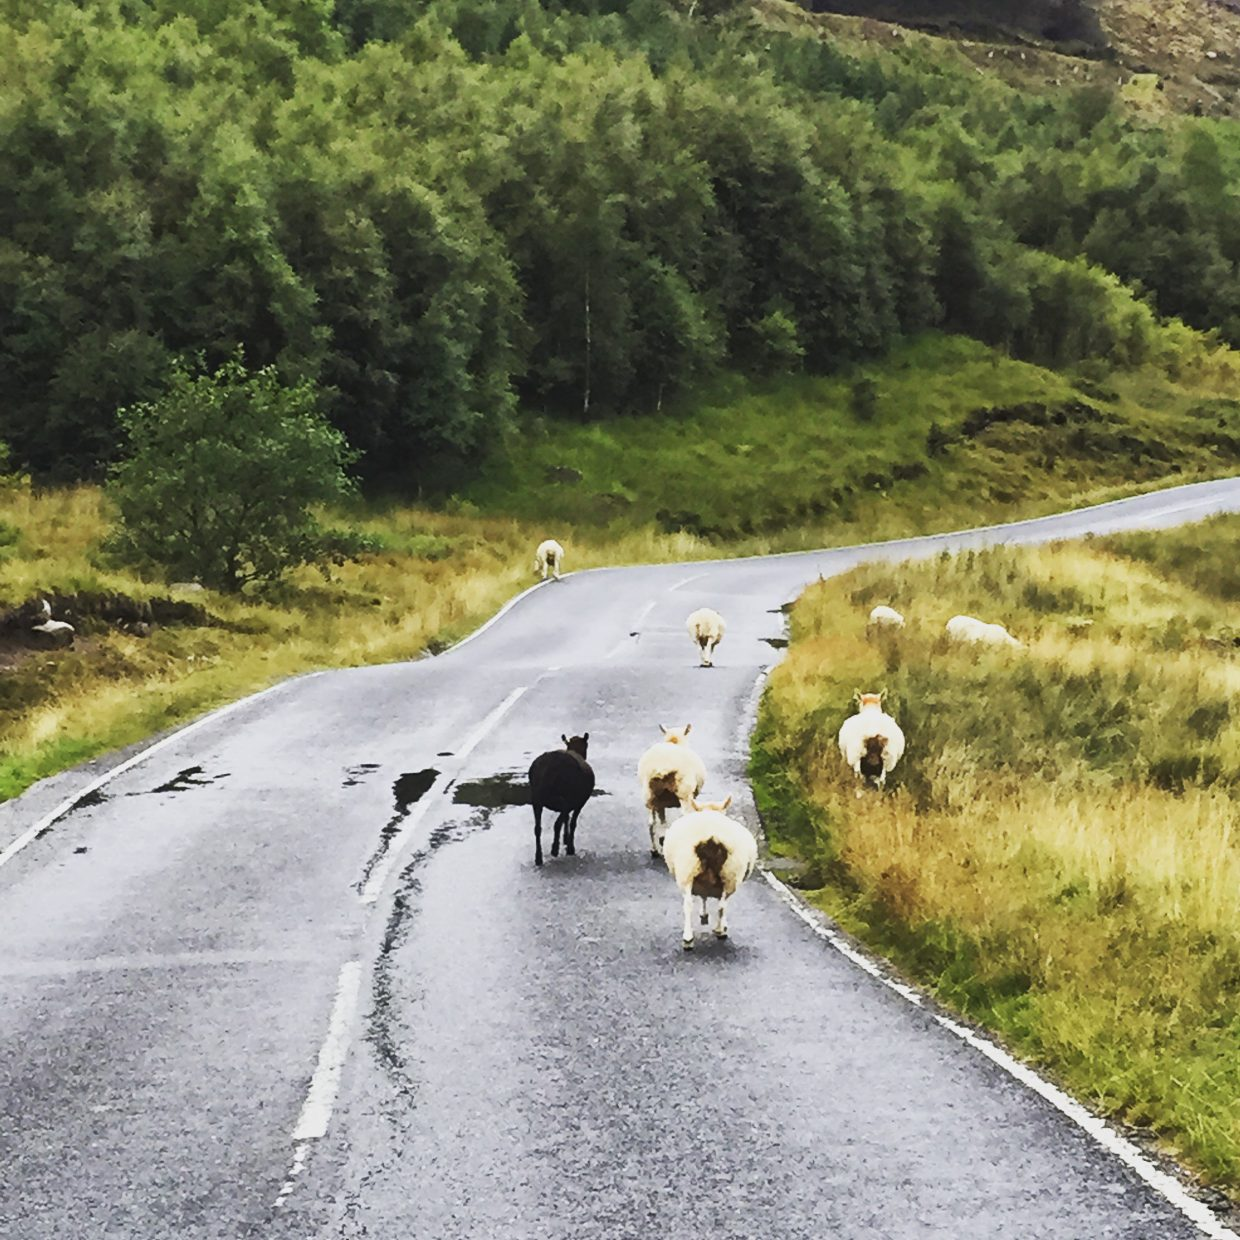 A country road in the Highlands and is a typical Scottish sight.